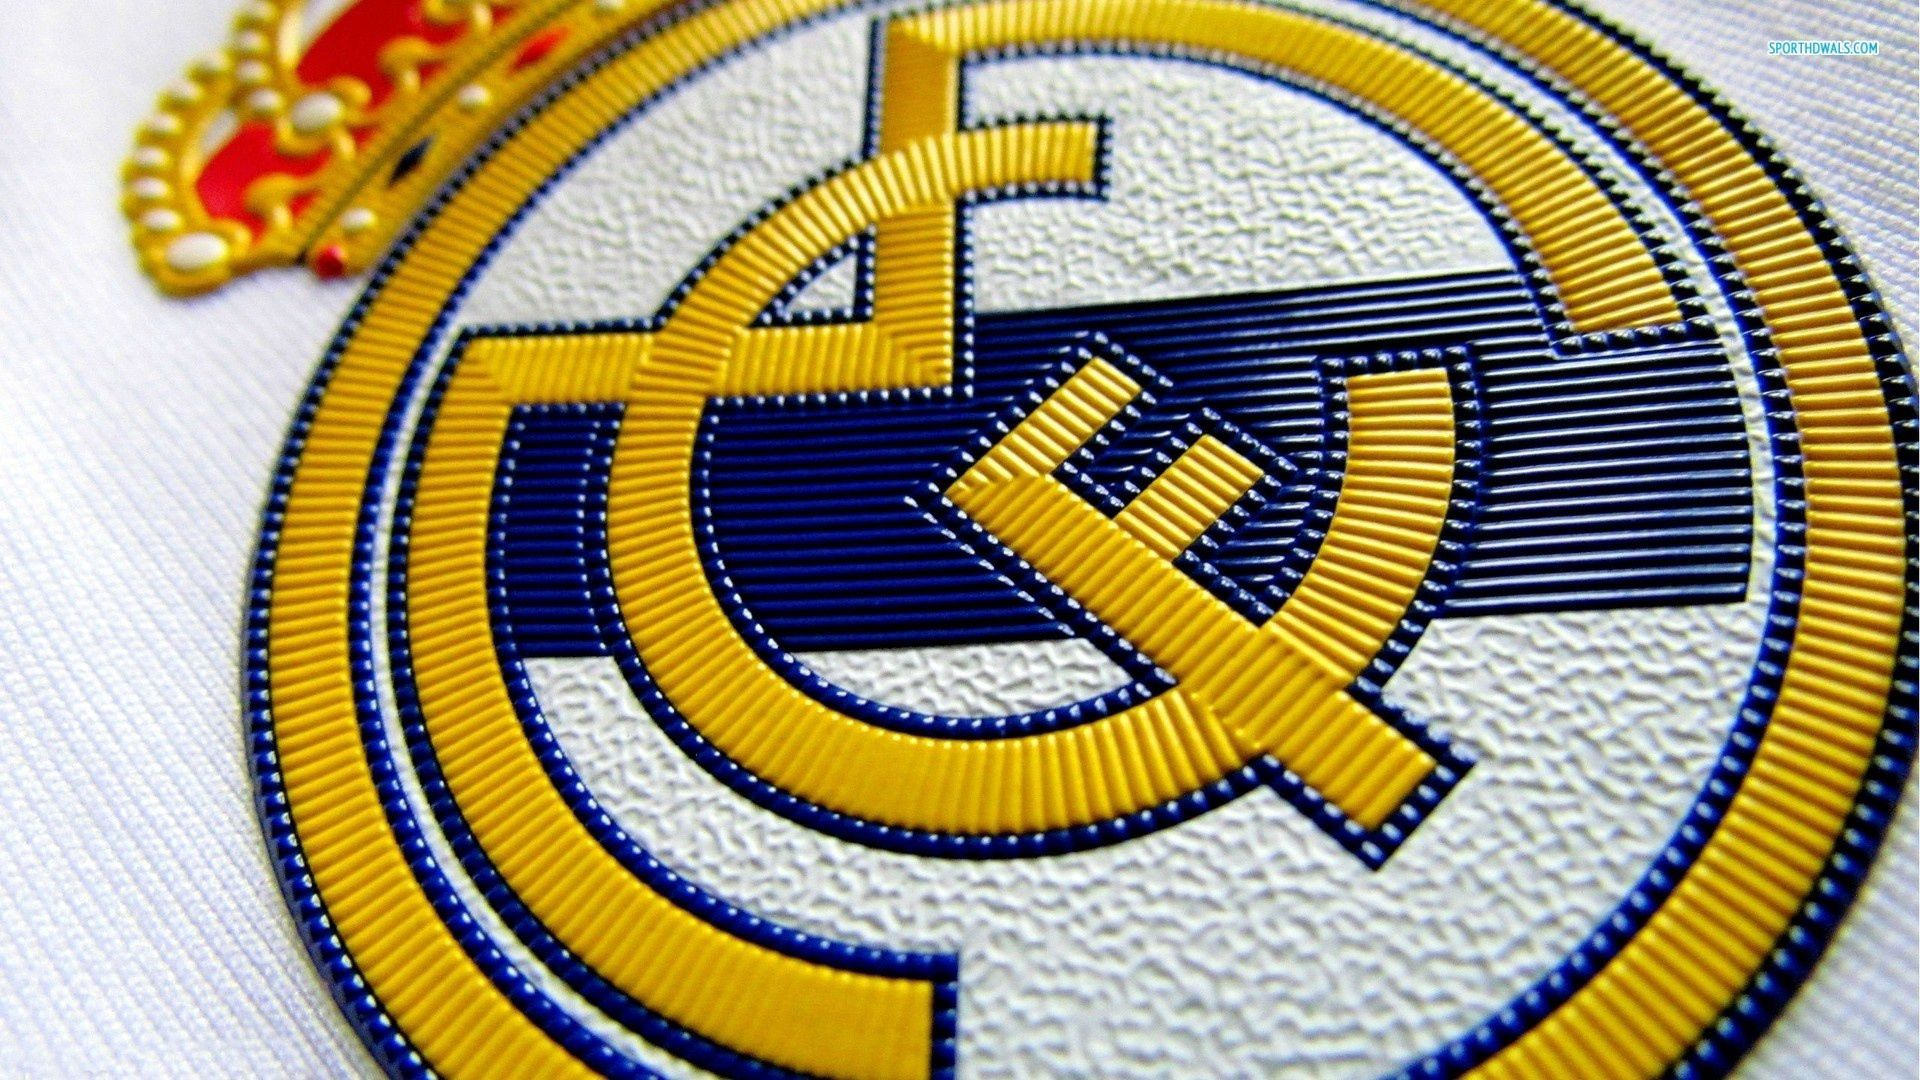 111076 download wallpaper Sports, Real Madrid, Football Club, Spain, Florentino Perez screensavers and pictures for free